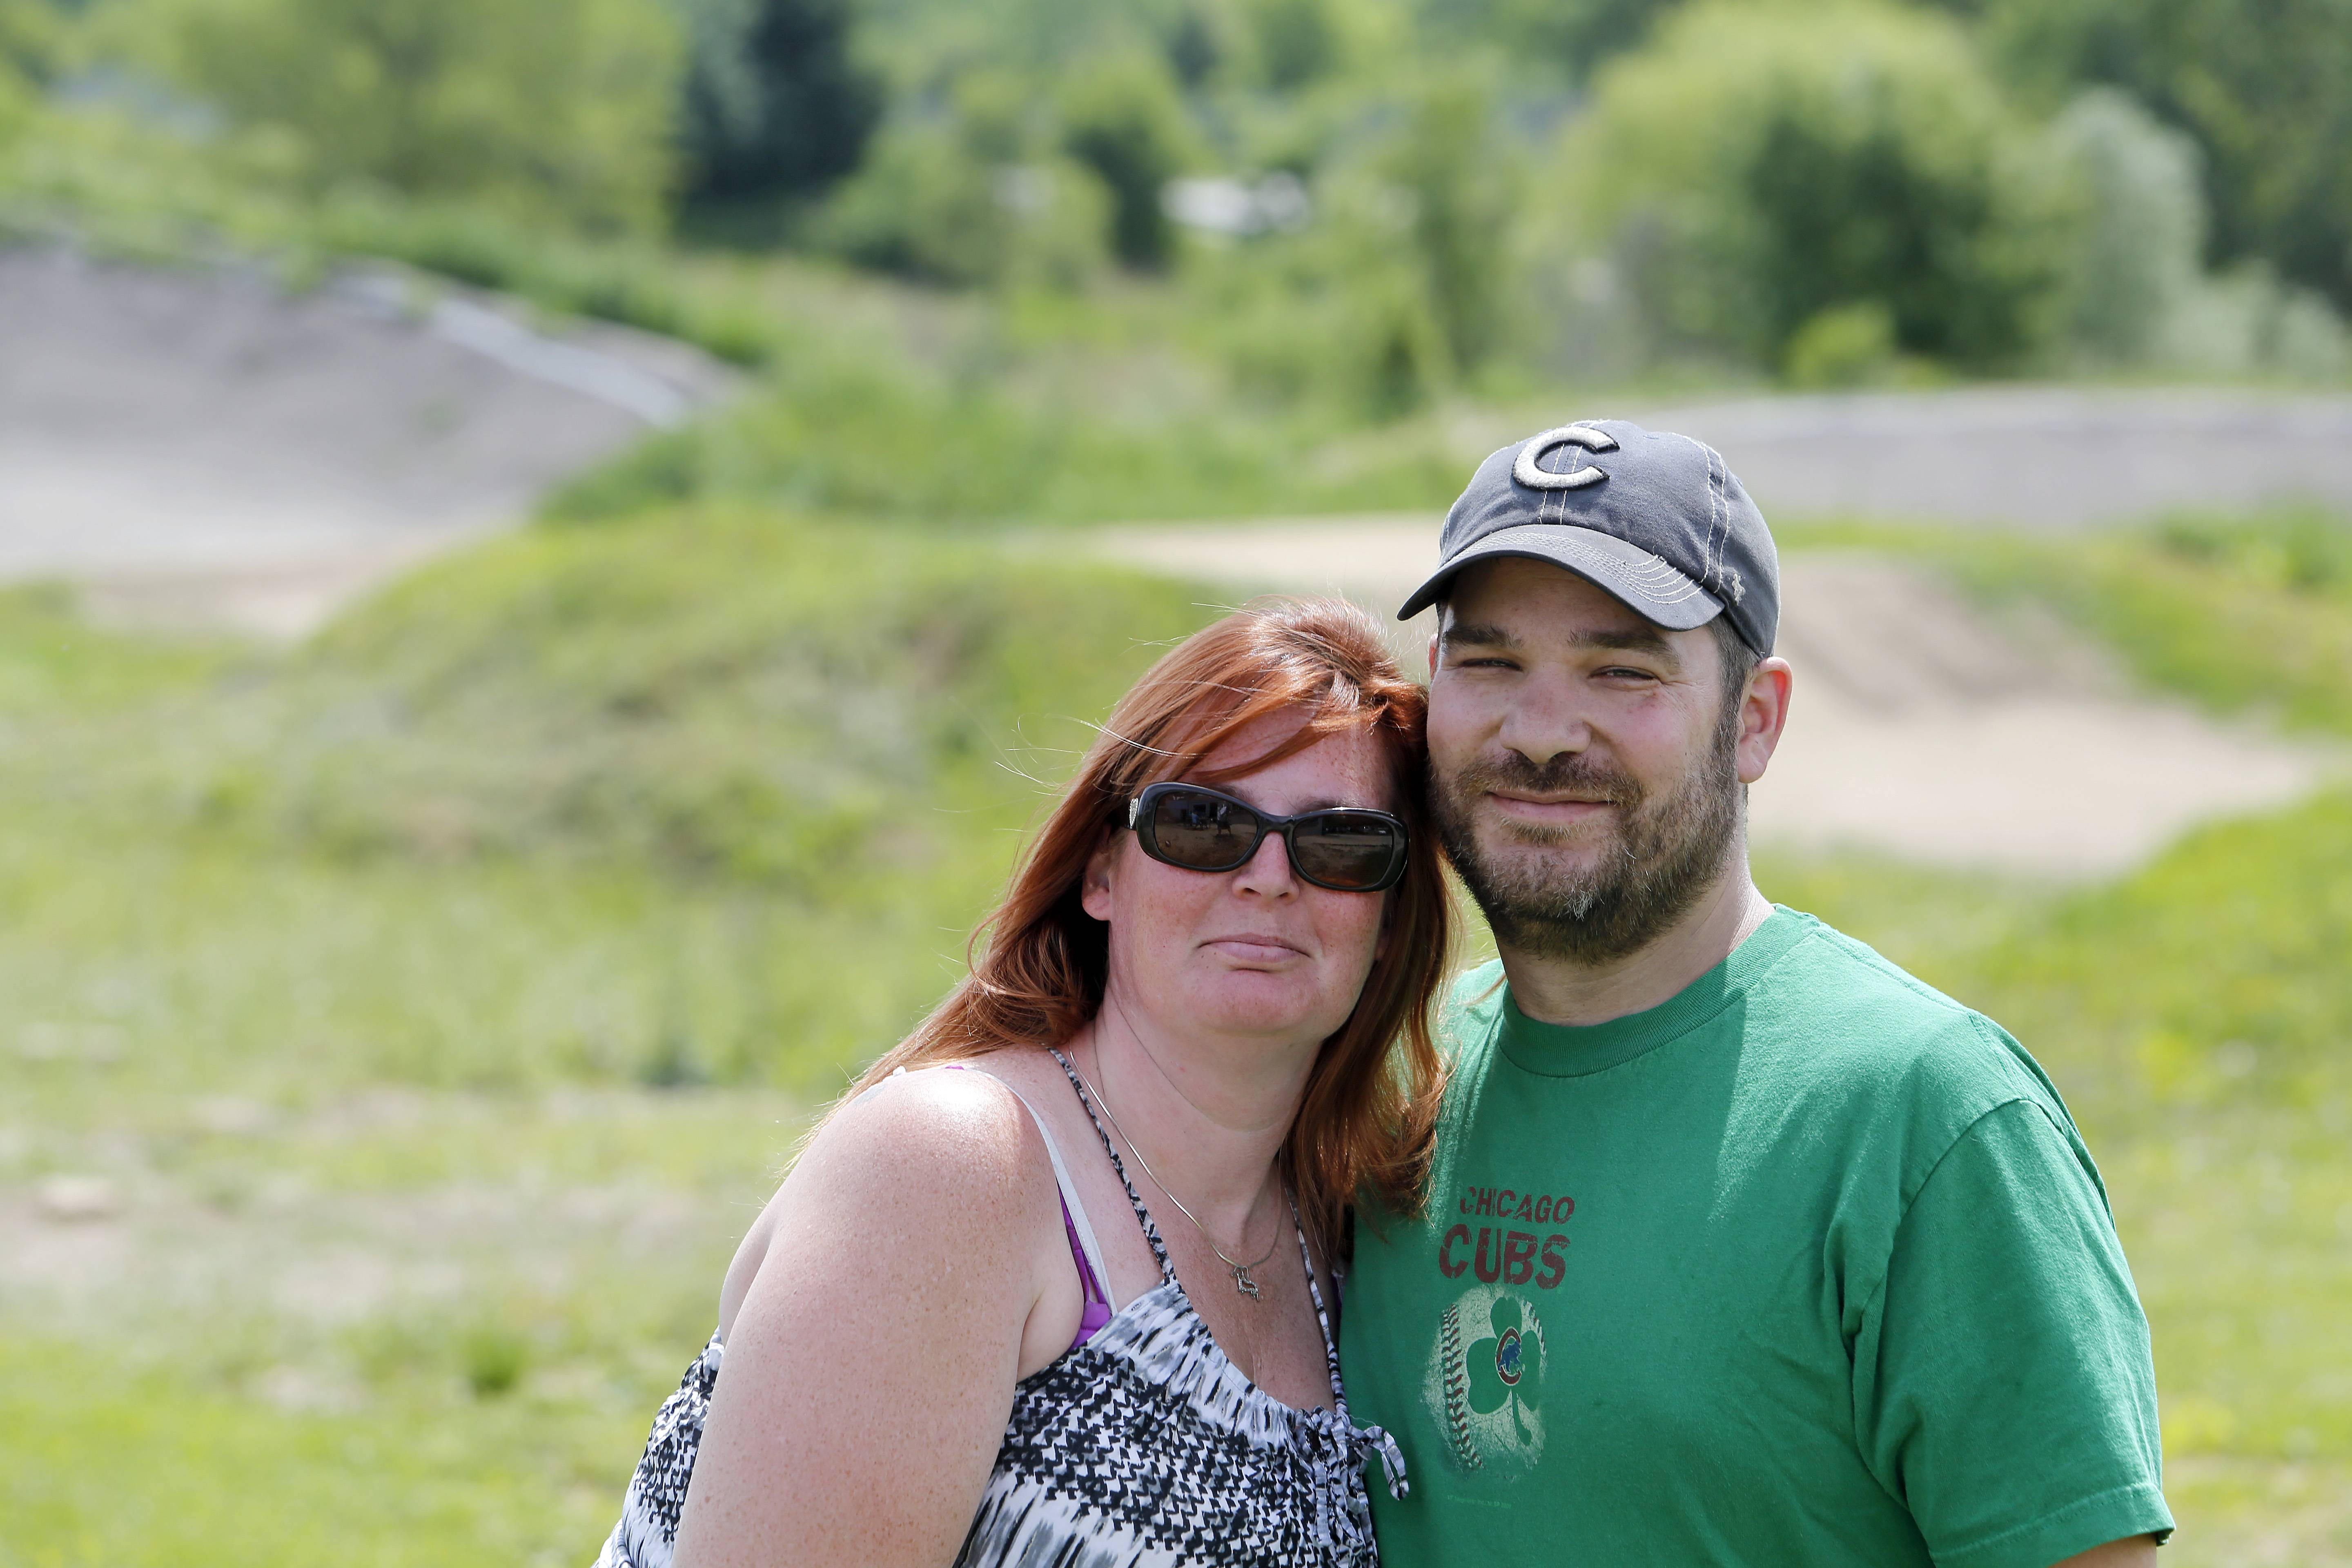 Jenna and Jim Barton are the new operators of the BMX track, known as The Hill, at the Elgin Sports Complex. They are trying to rebuild and attract more riders after attendance dropped off in the last few years.